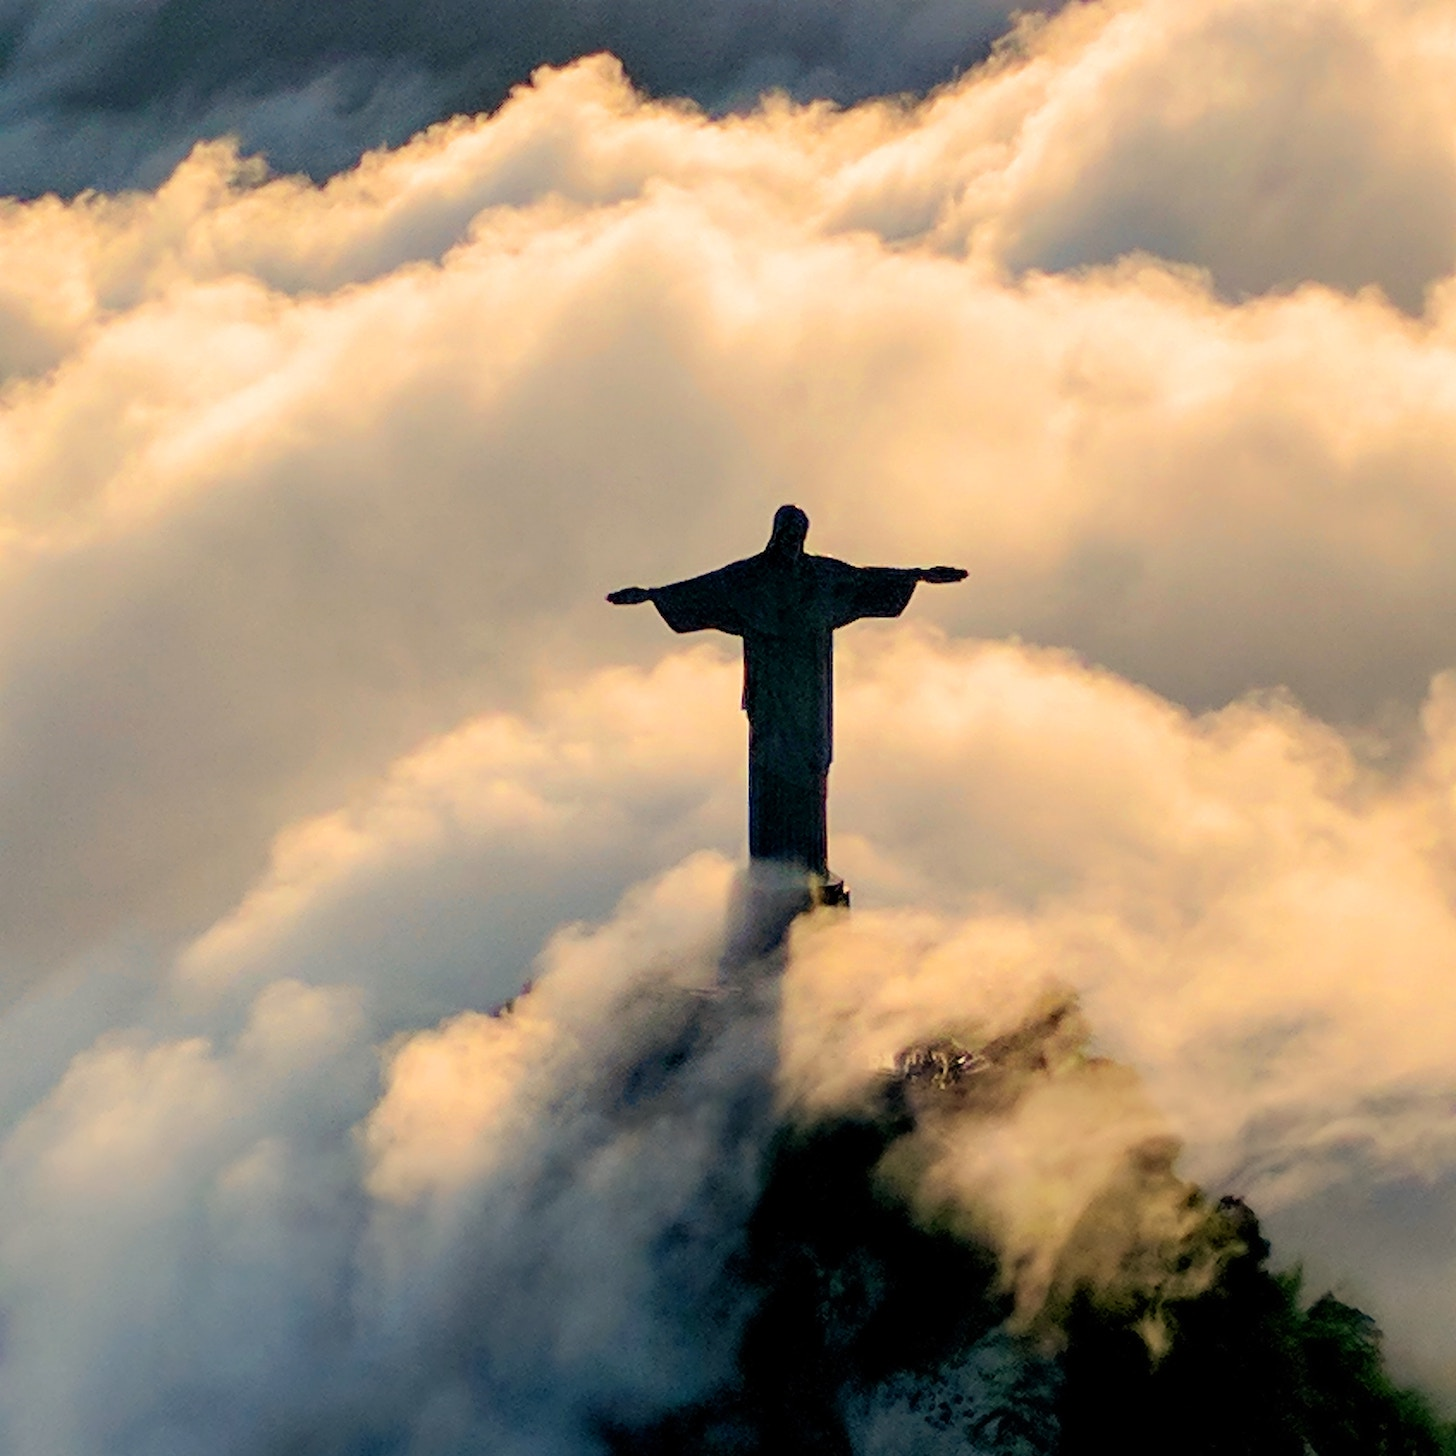 Christ the Redeemer' landmark, Rio de Janeiro in Brazil. Photo: Robert Nyman